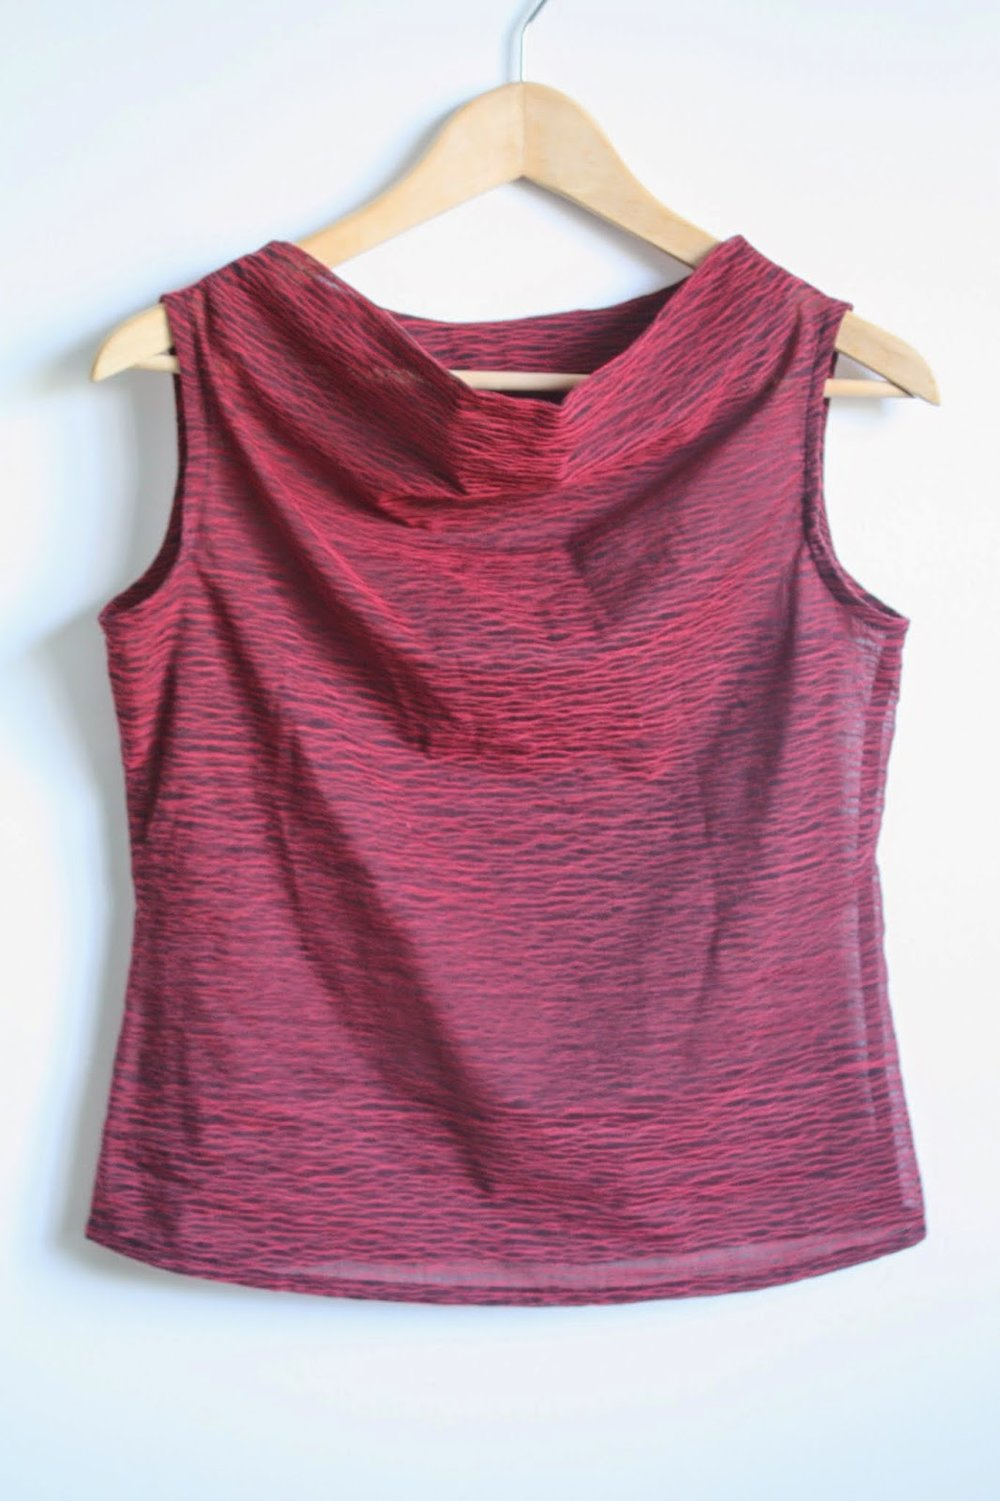 Cowl Neck Top by Nicole at Home